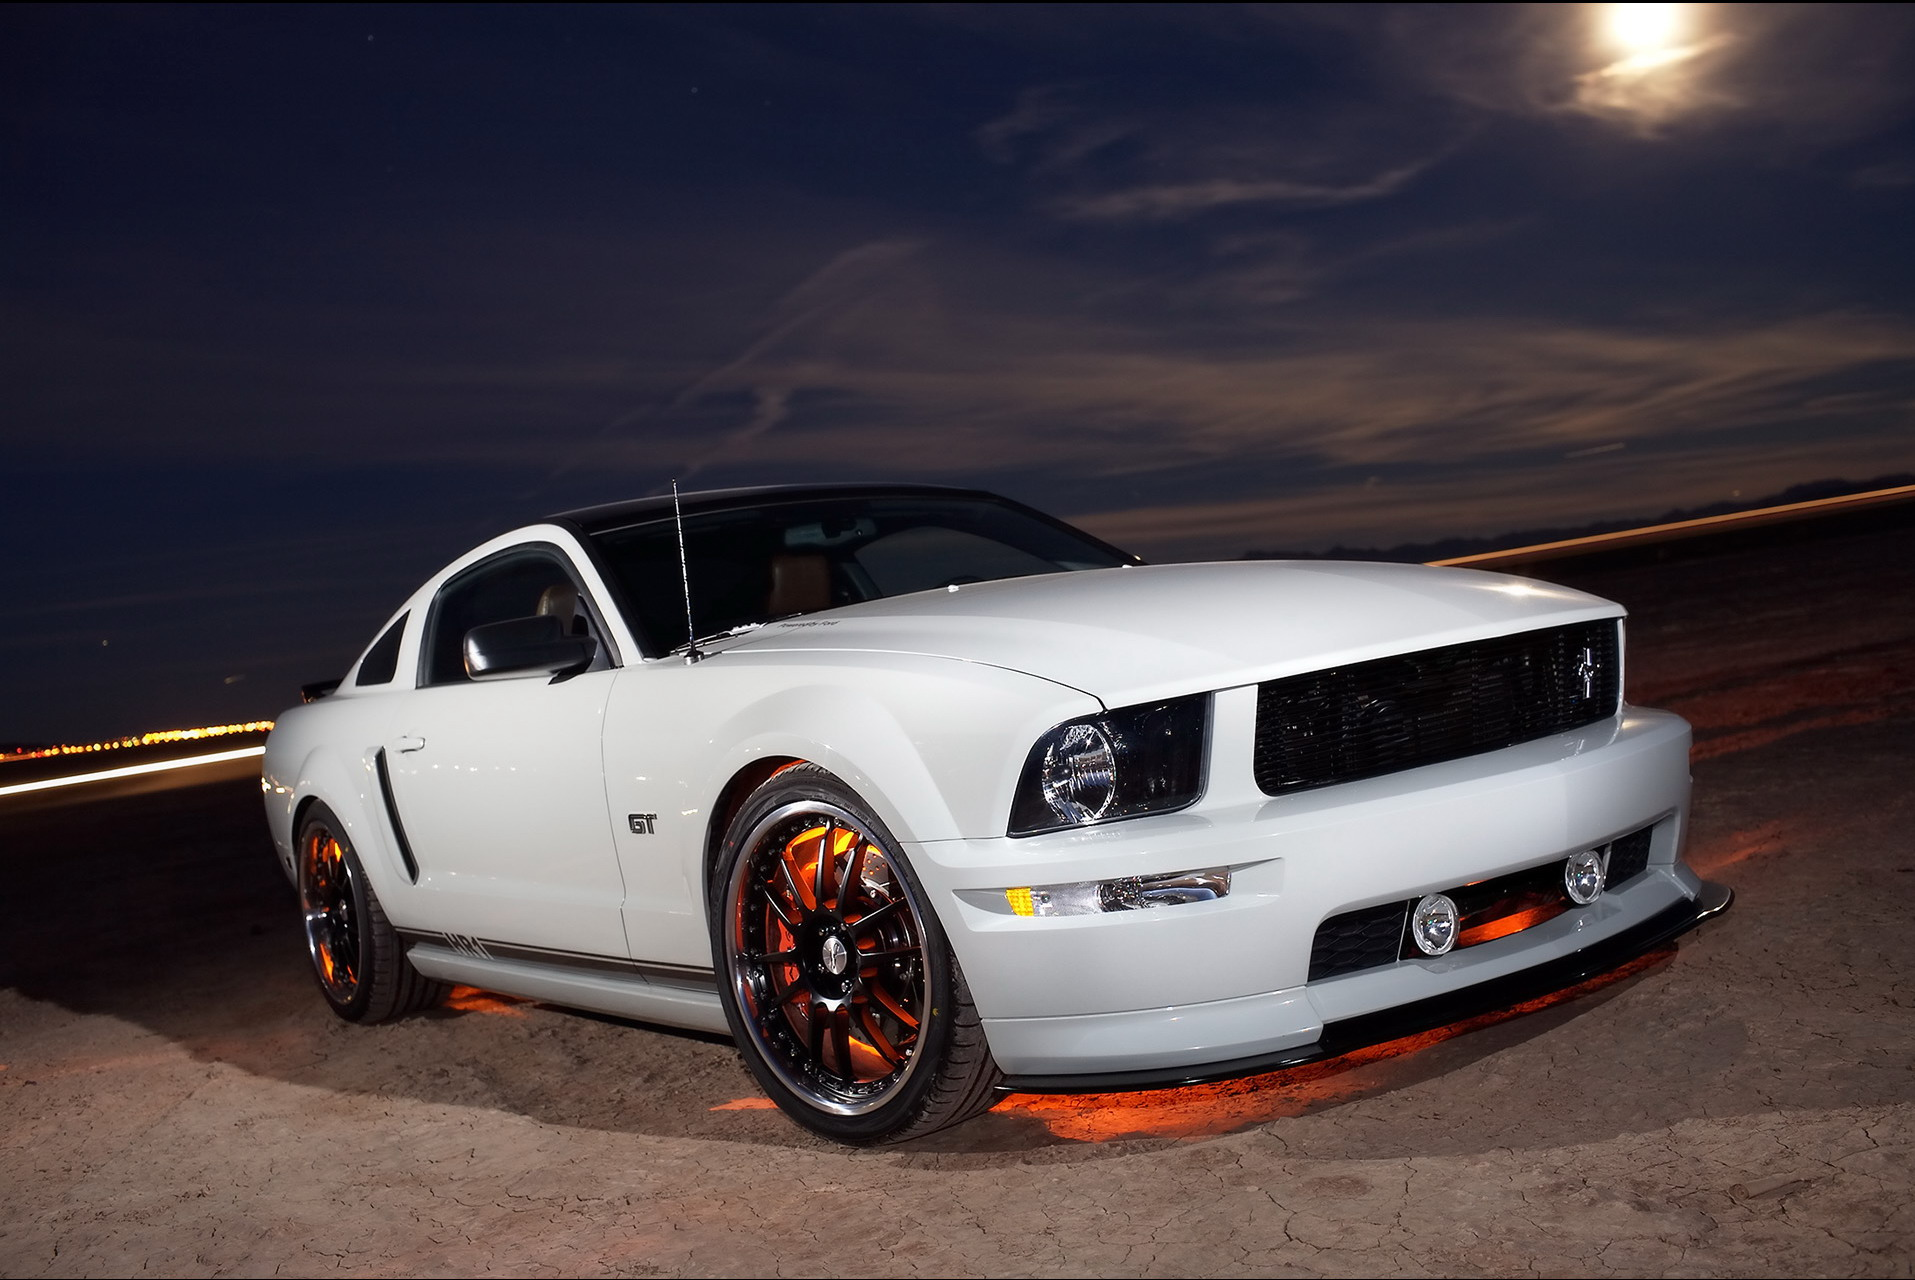 D Mustang V Turn Signal Issue Front L s Ea additionally Starter Terminal also Lrs Aa further D Mustang Power Passenger Seat Conversion Seat as well D Radio Control Lights Mustang V Transplanted Radio Radio Wiring. on 2005 ford mustang wiring diagram